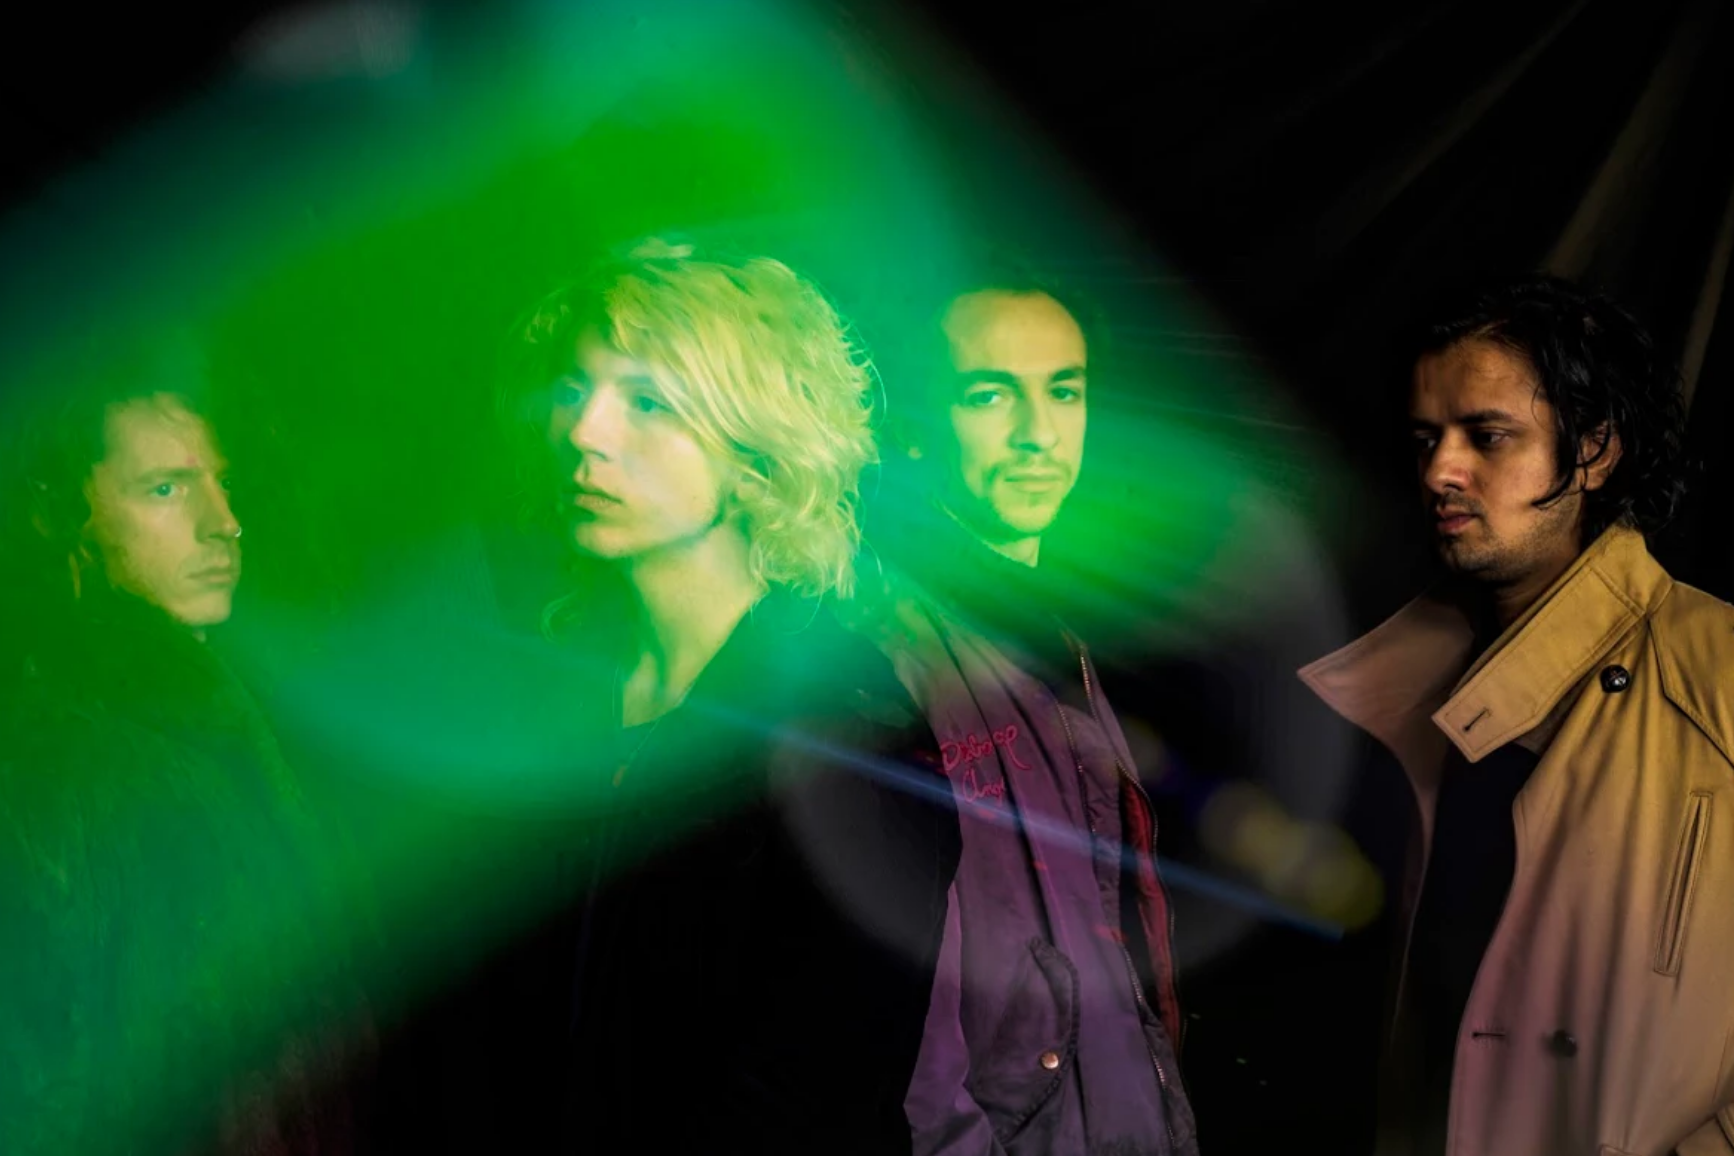 Mystery Jets get existential on 'The World Is Overtaking Me', from a new EP